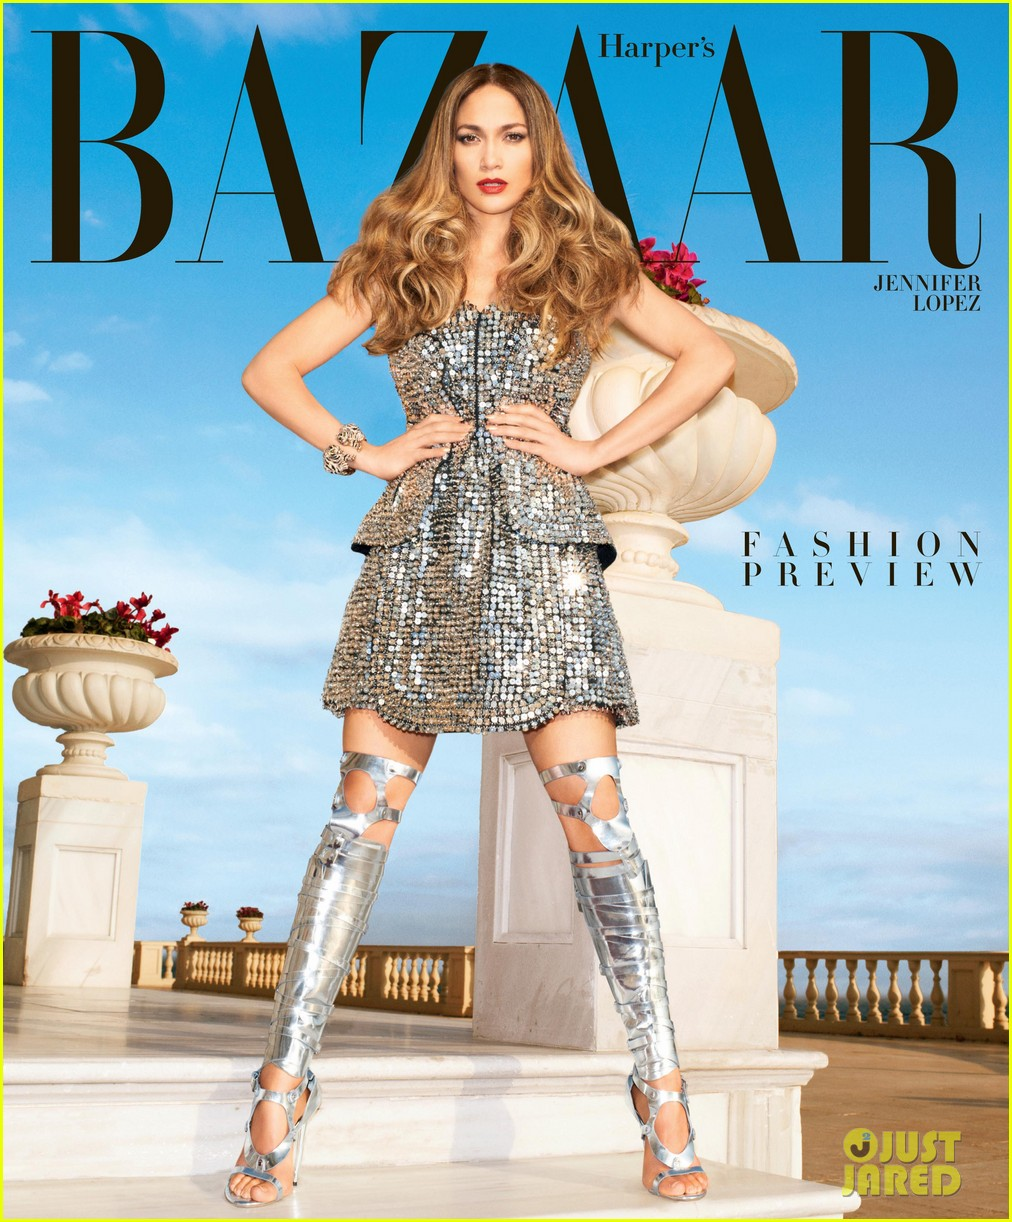 Chizy 39 S Spyware Jenifer Lopez Covers Harpers Bazaar 39 S